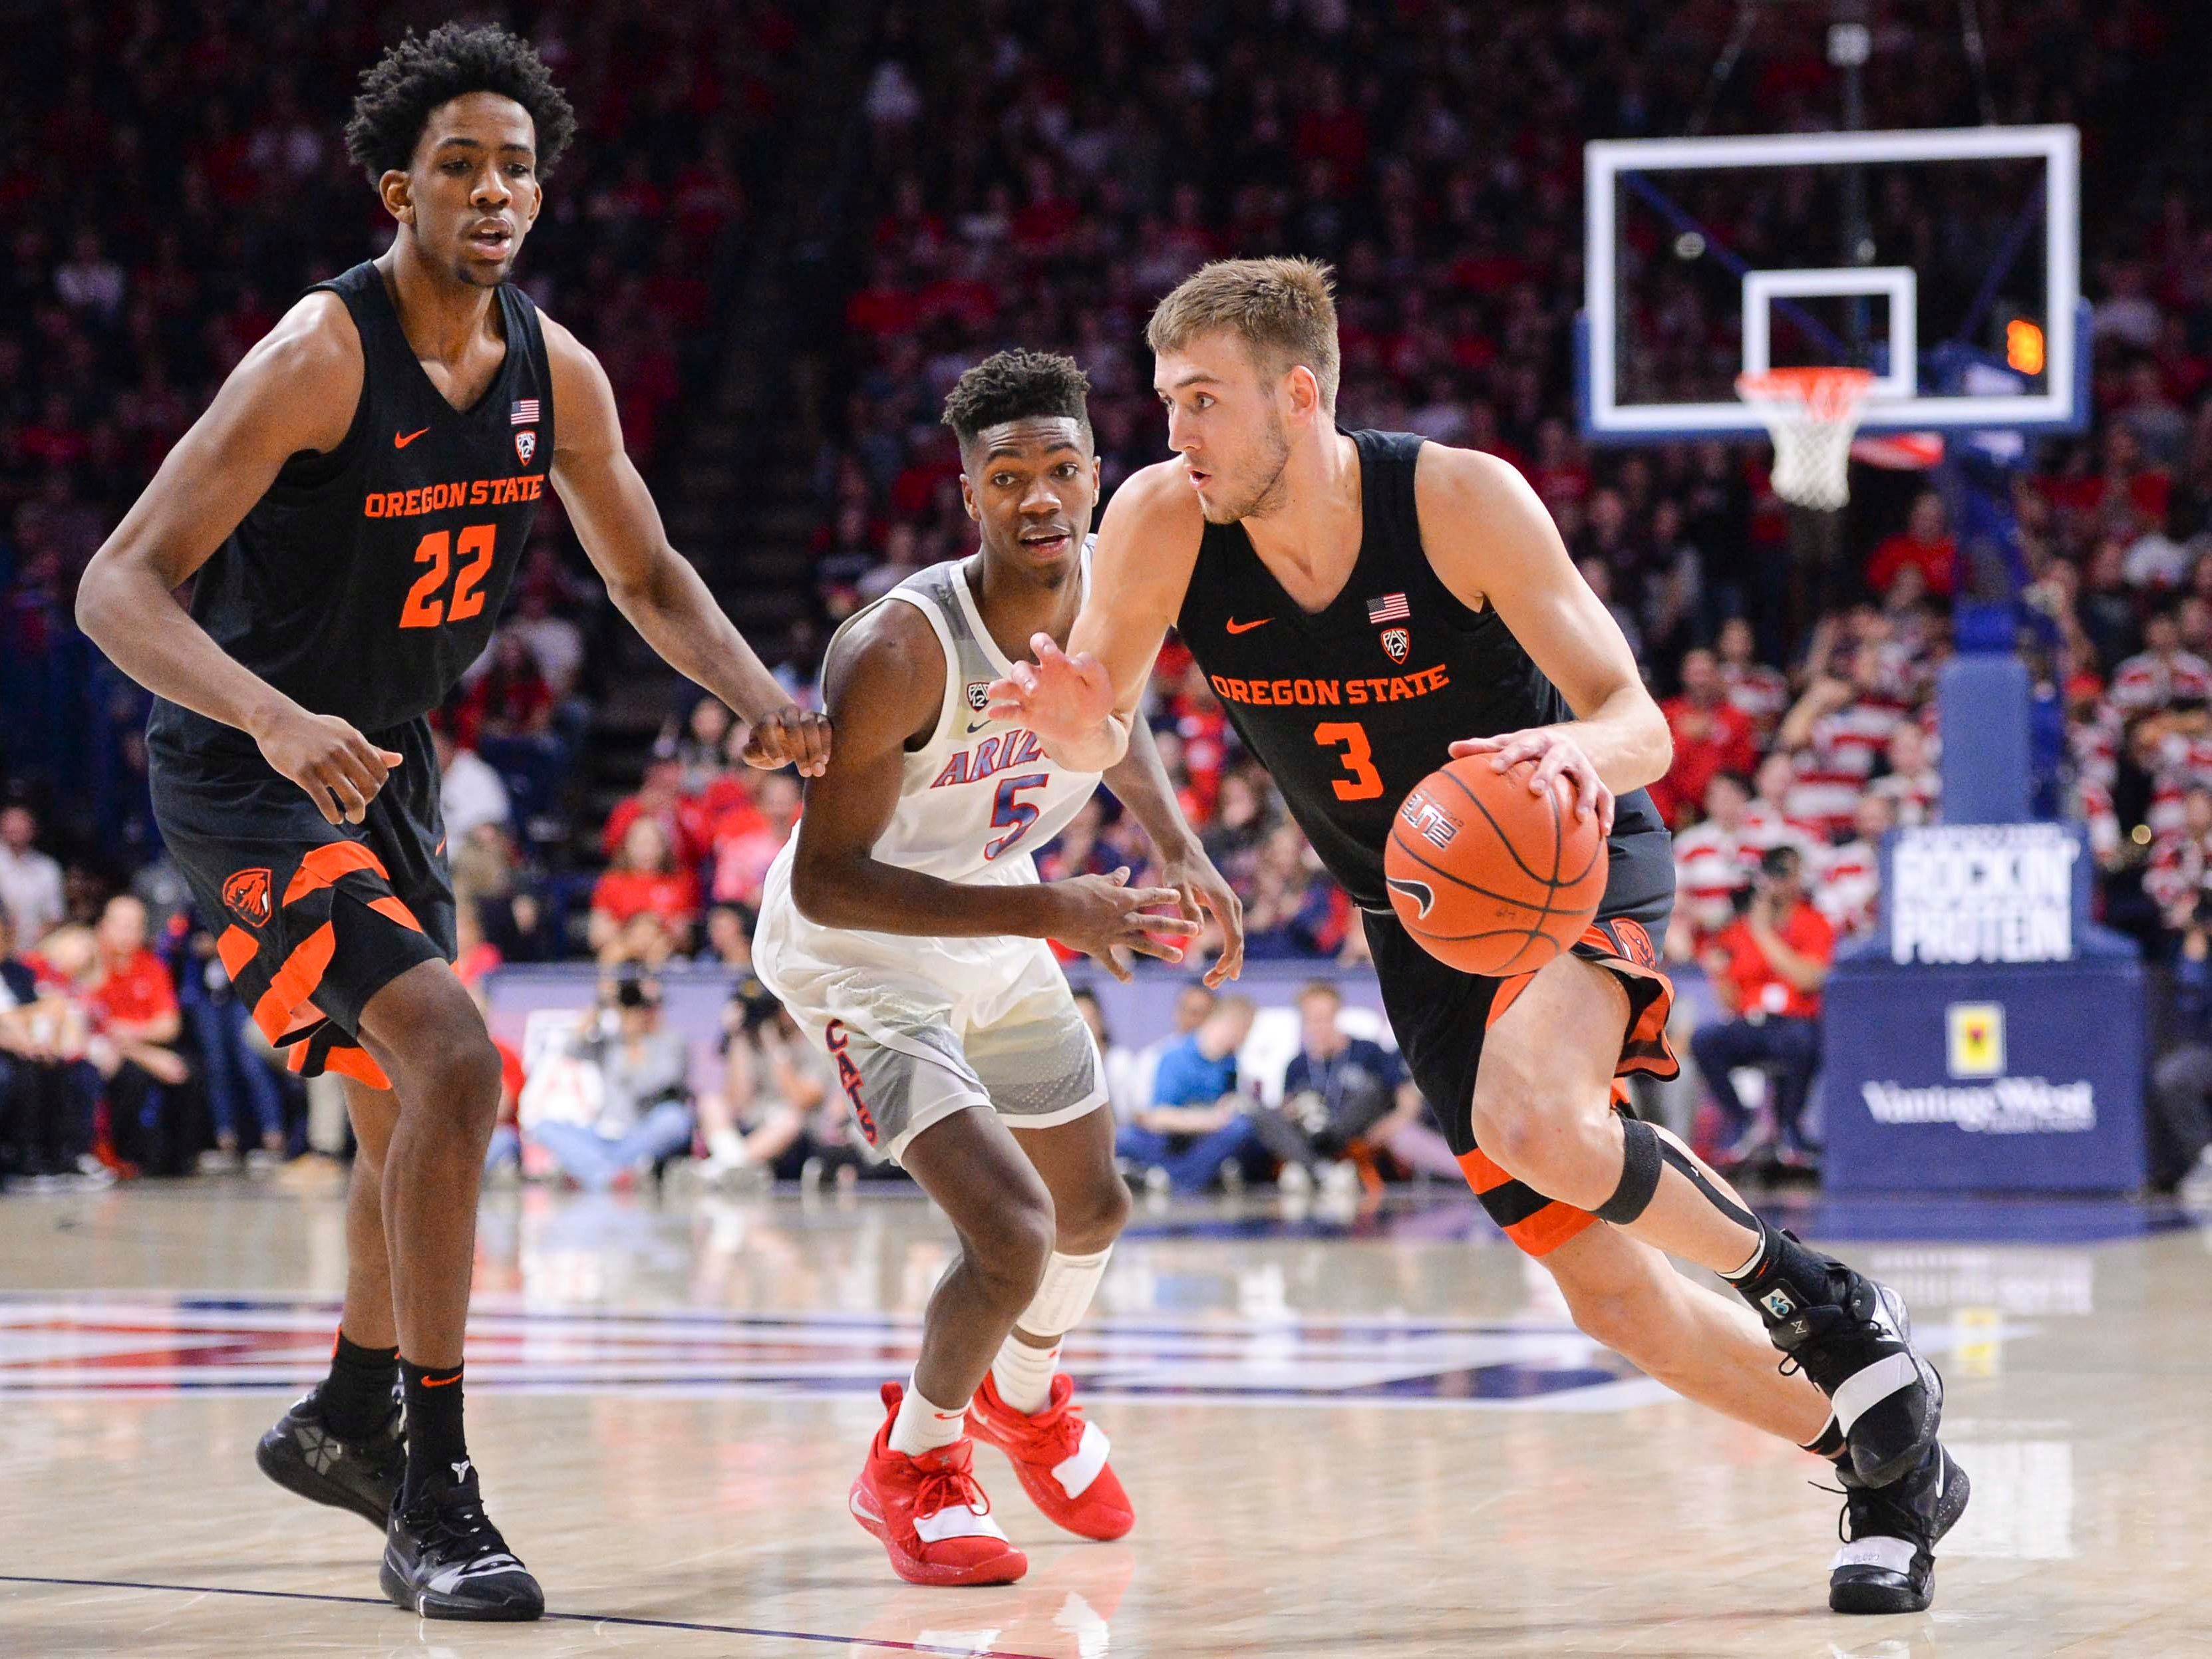 Jan 19, 2019; Tucson, AZ, USA; Oregon State Beavers forward Tres Tinkle (3) drives past forward Warren Washington (22) and Arizona Wildcats guard Brandon Randolph (5) during the first half at McKale Center. Mandatory Credit: Casey Sapio-USA TODAY Sports